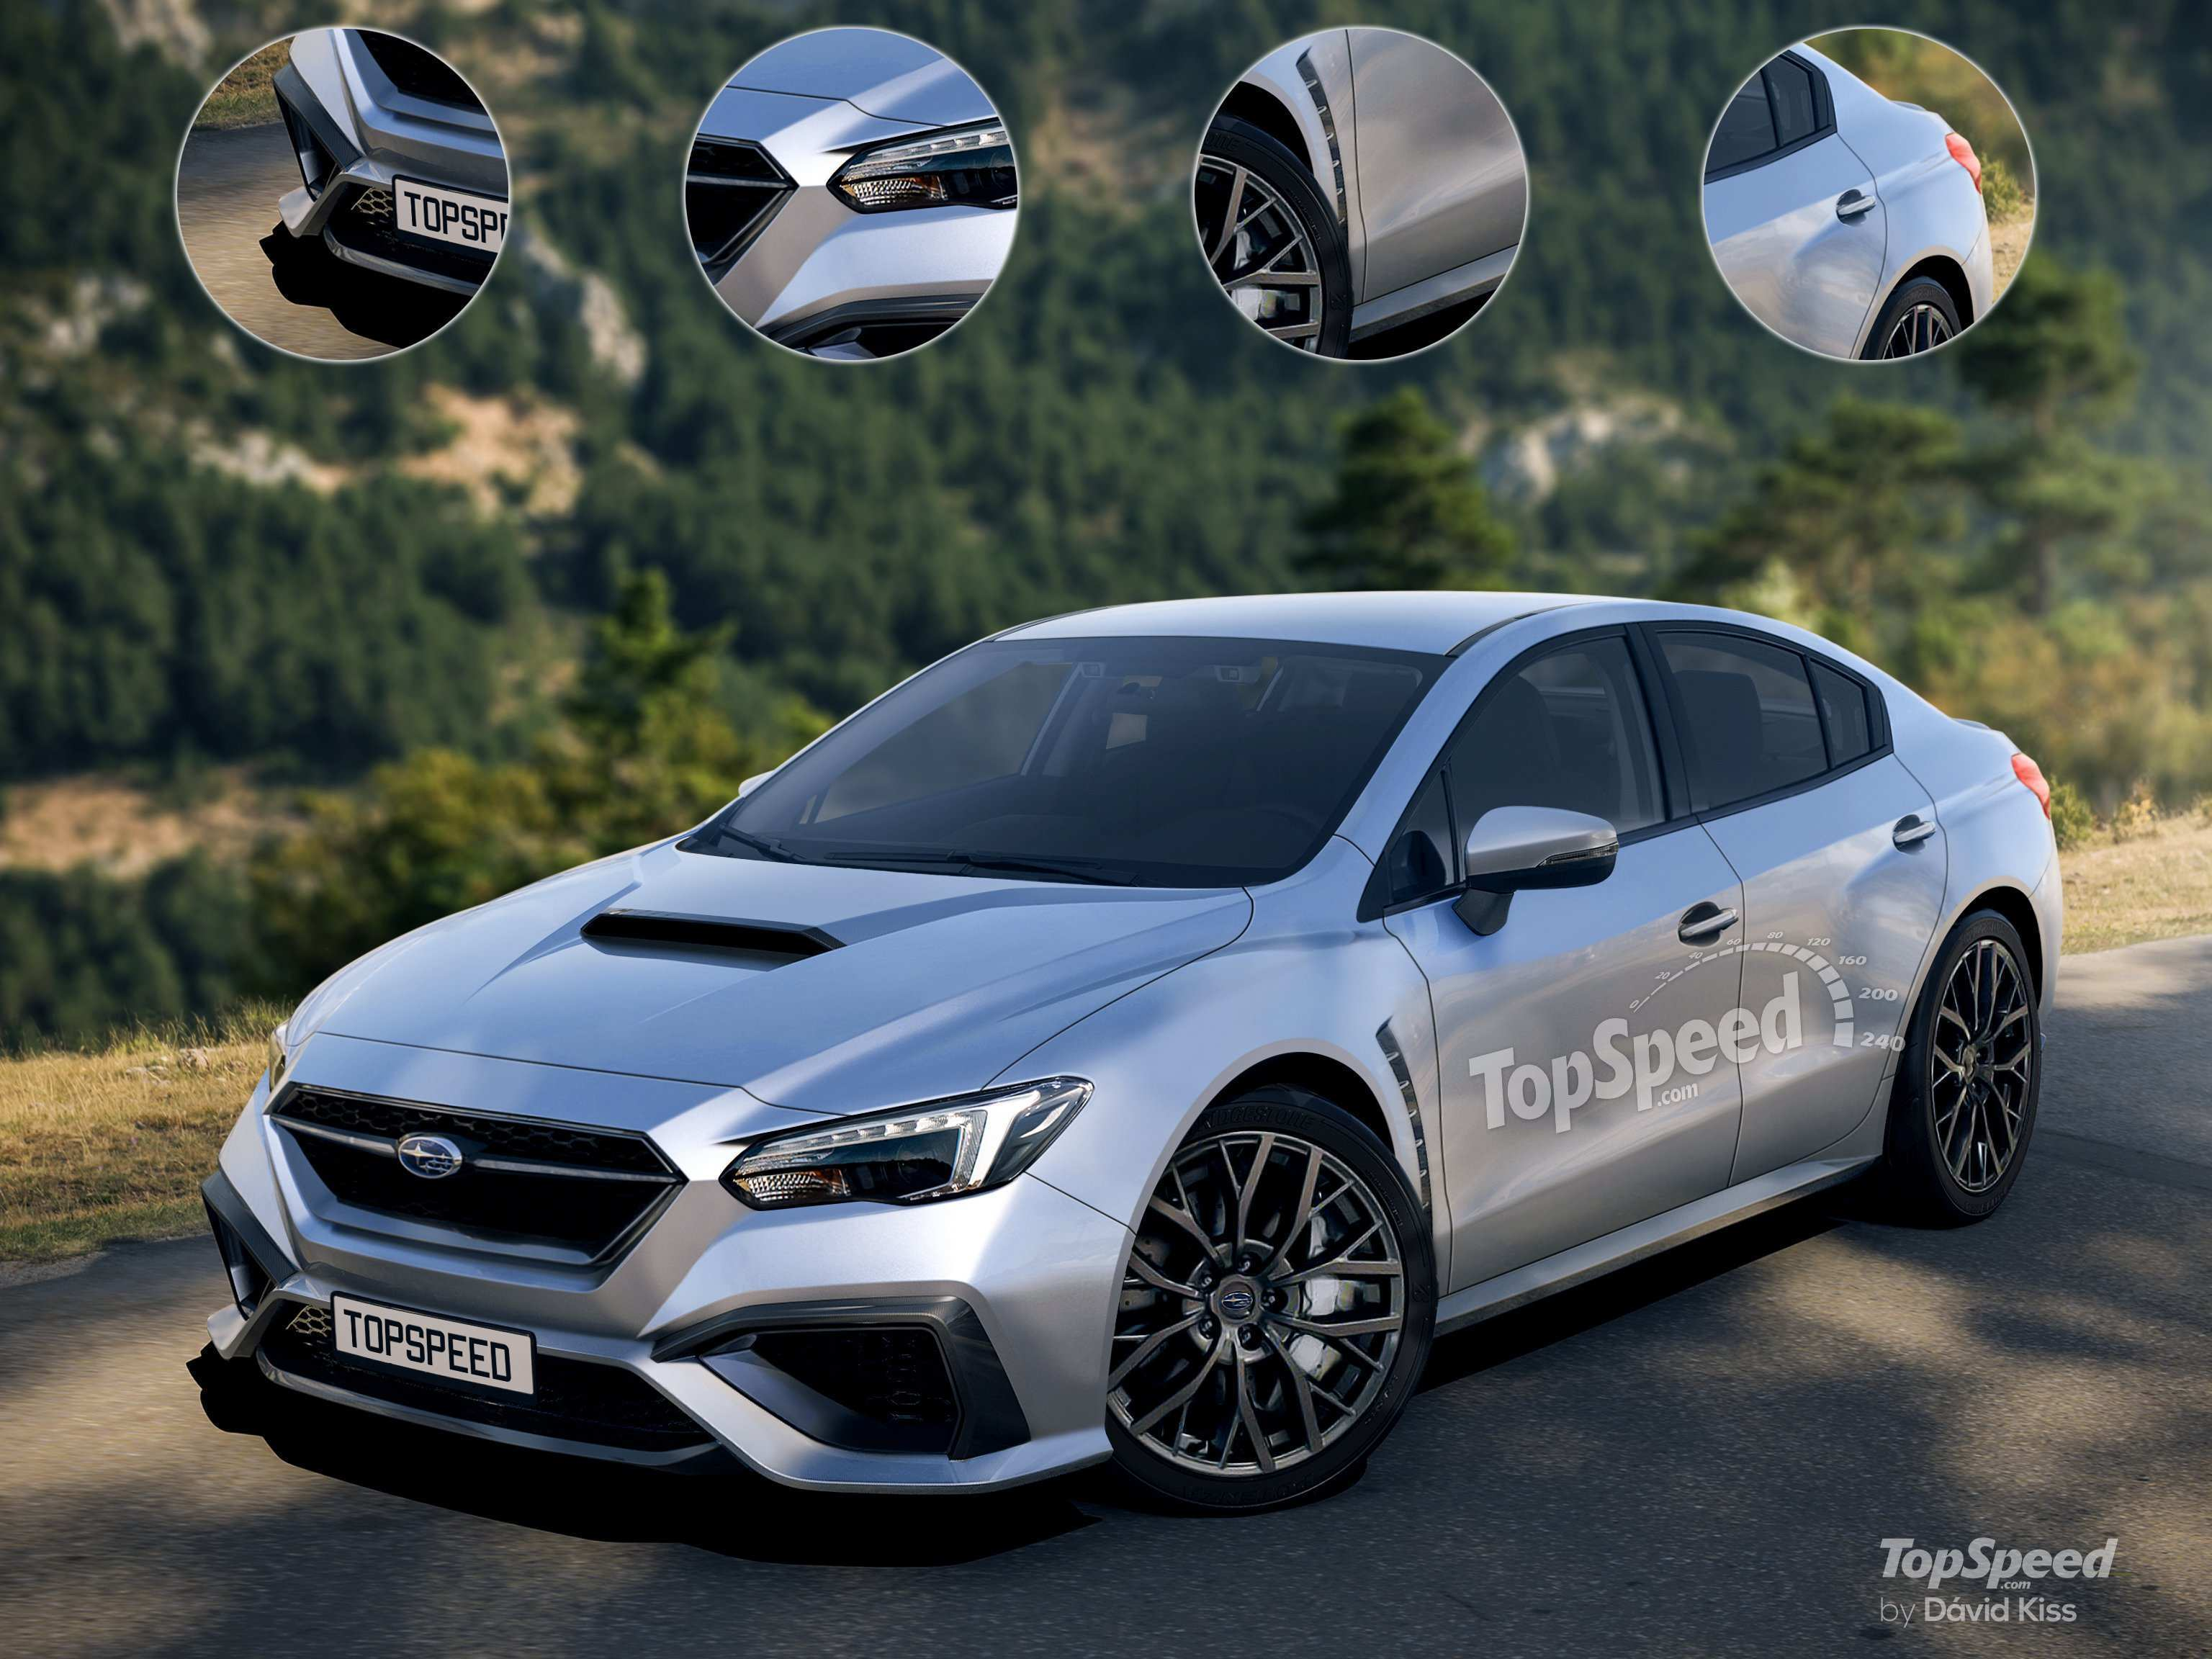 50 Concept of Subaru New New Concepts 2020 Photos for Subaru New New Concepts 2020